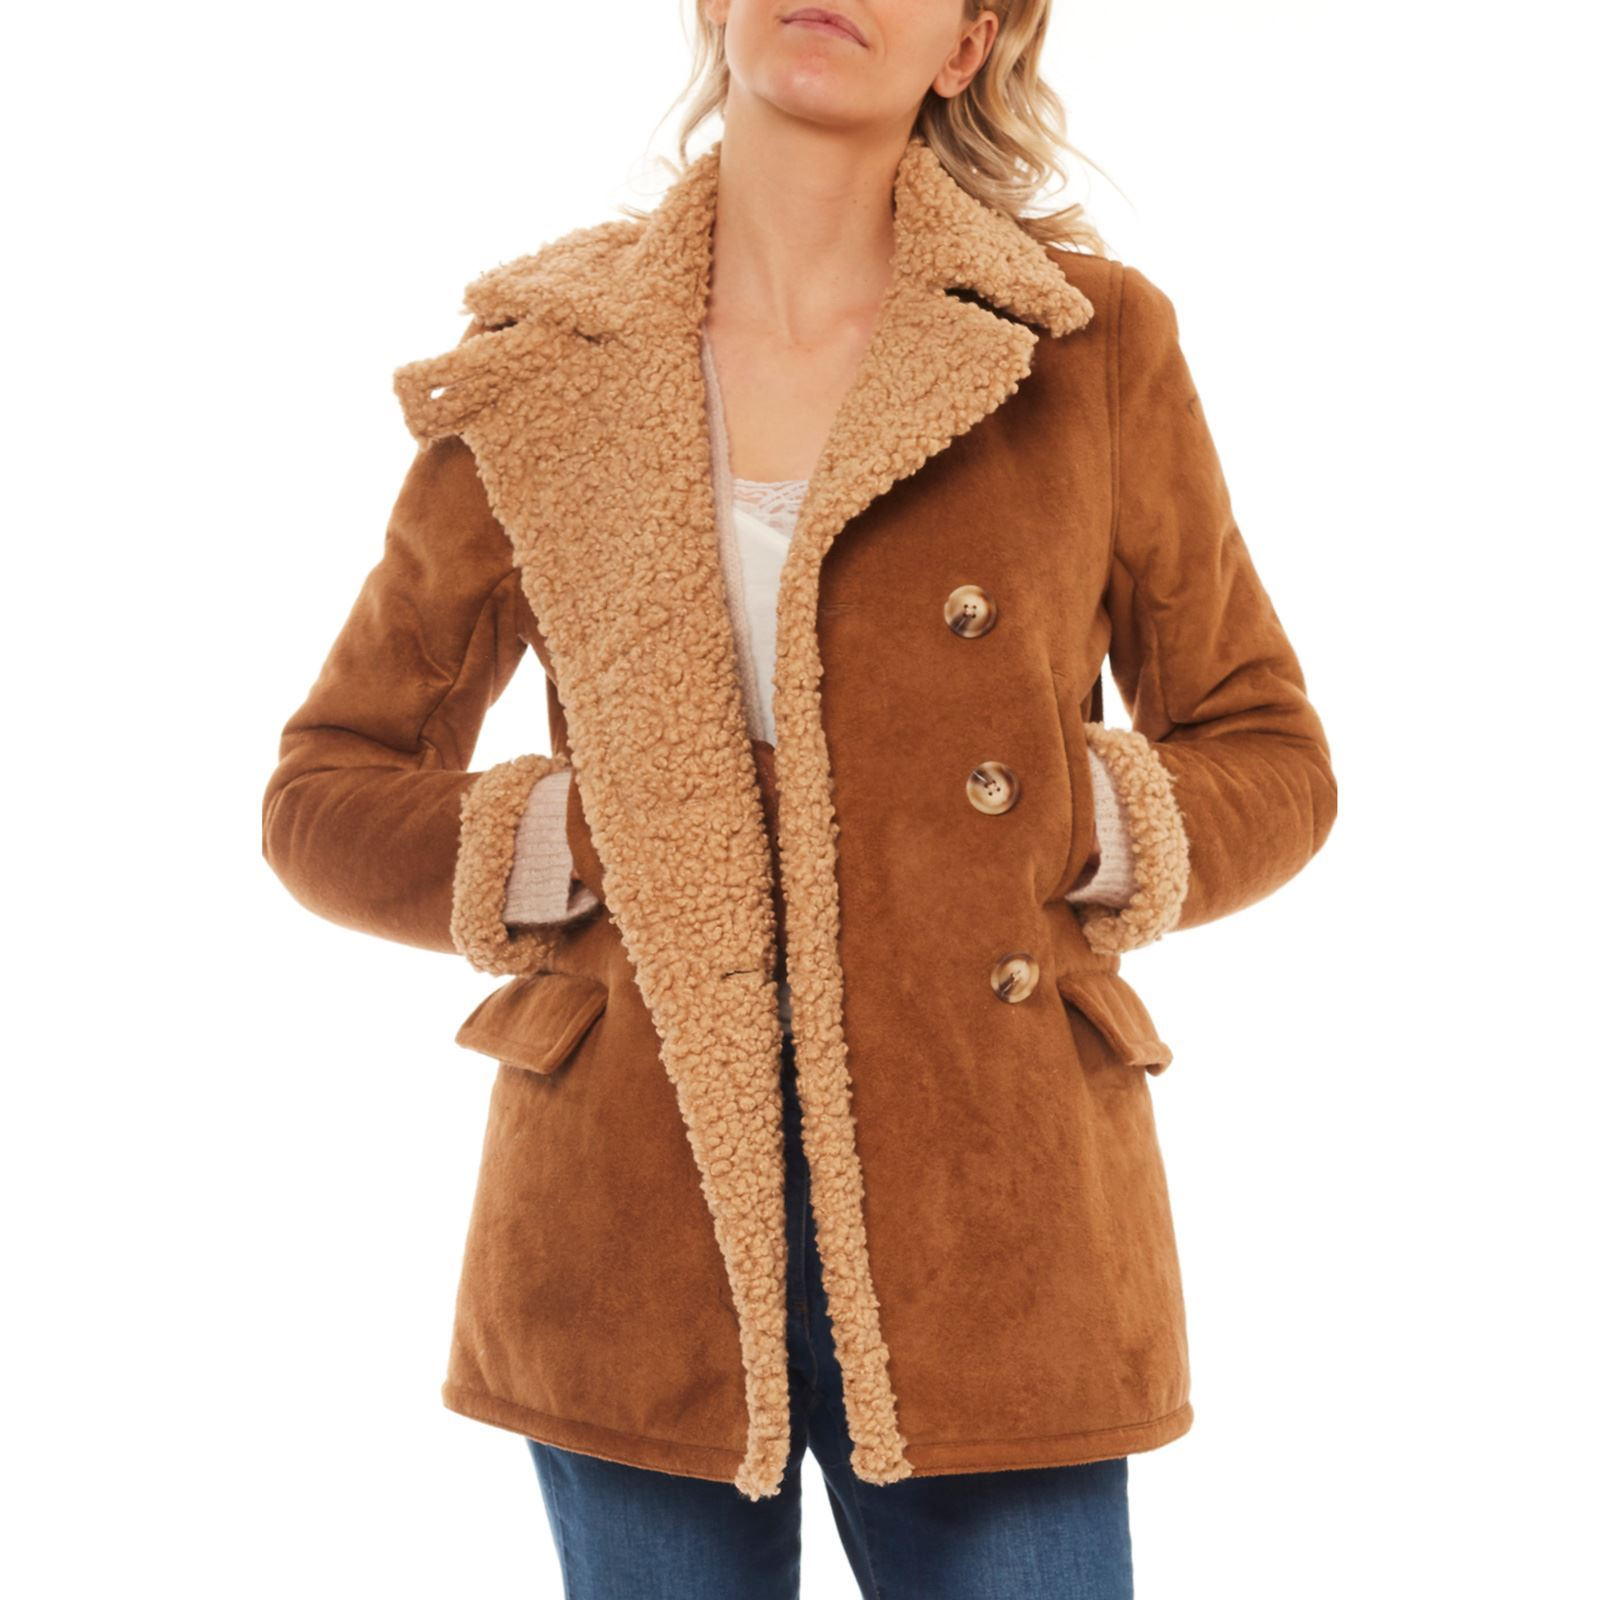 Brandalley Clair Marron Texas Caroll Manteau tw7IXxtvcq 4babfa90fe7